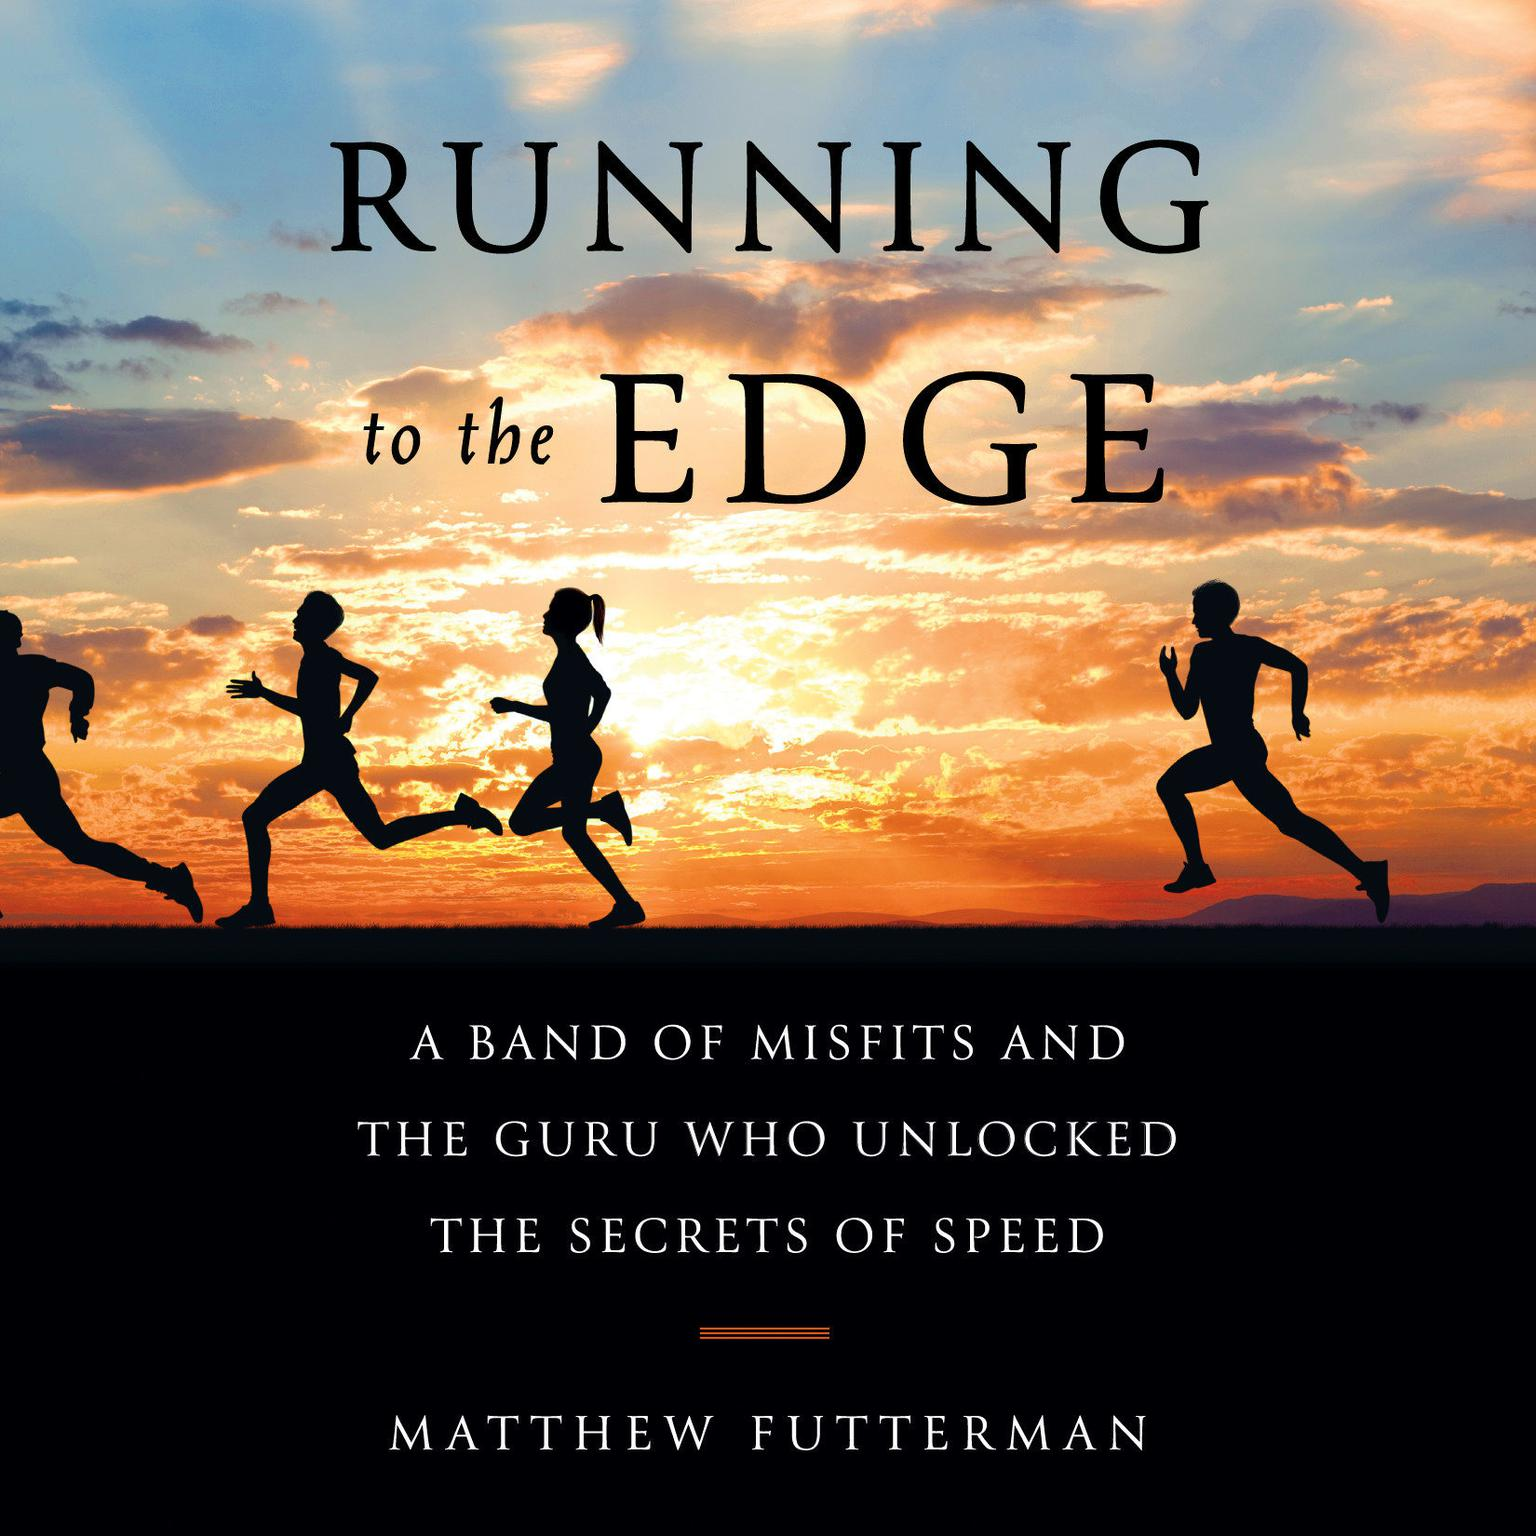 Printable Running to the Edge: A Band of Misfits and the Guru Who Unlocked the Secrets of Speed Audiobook Cover Art